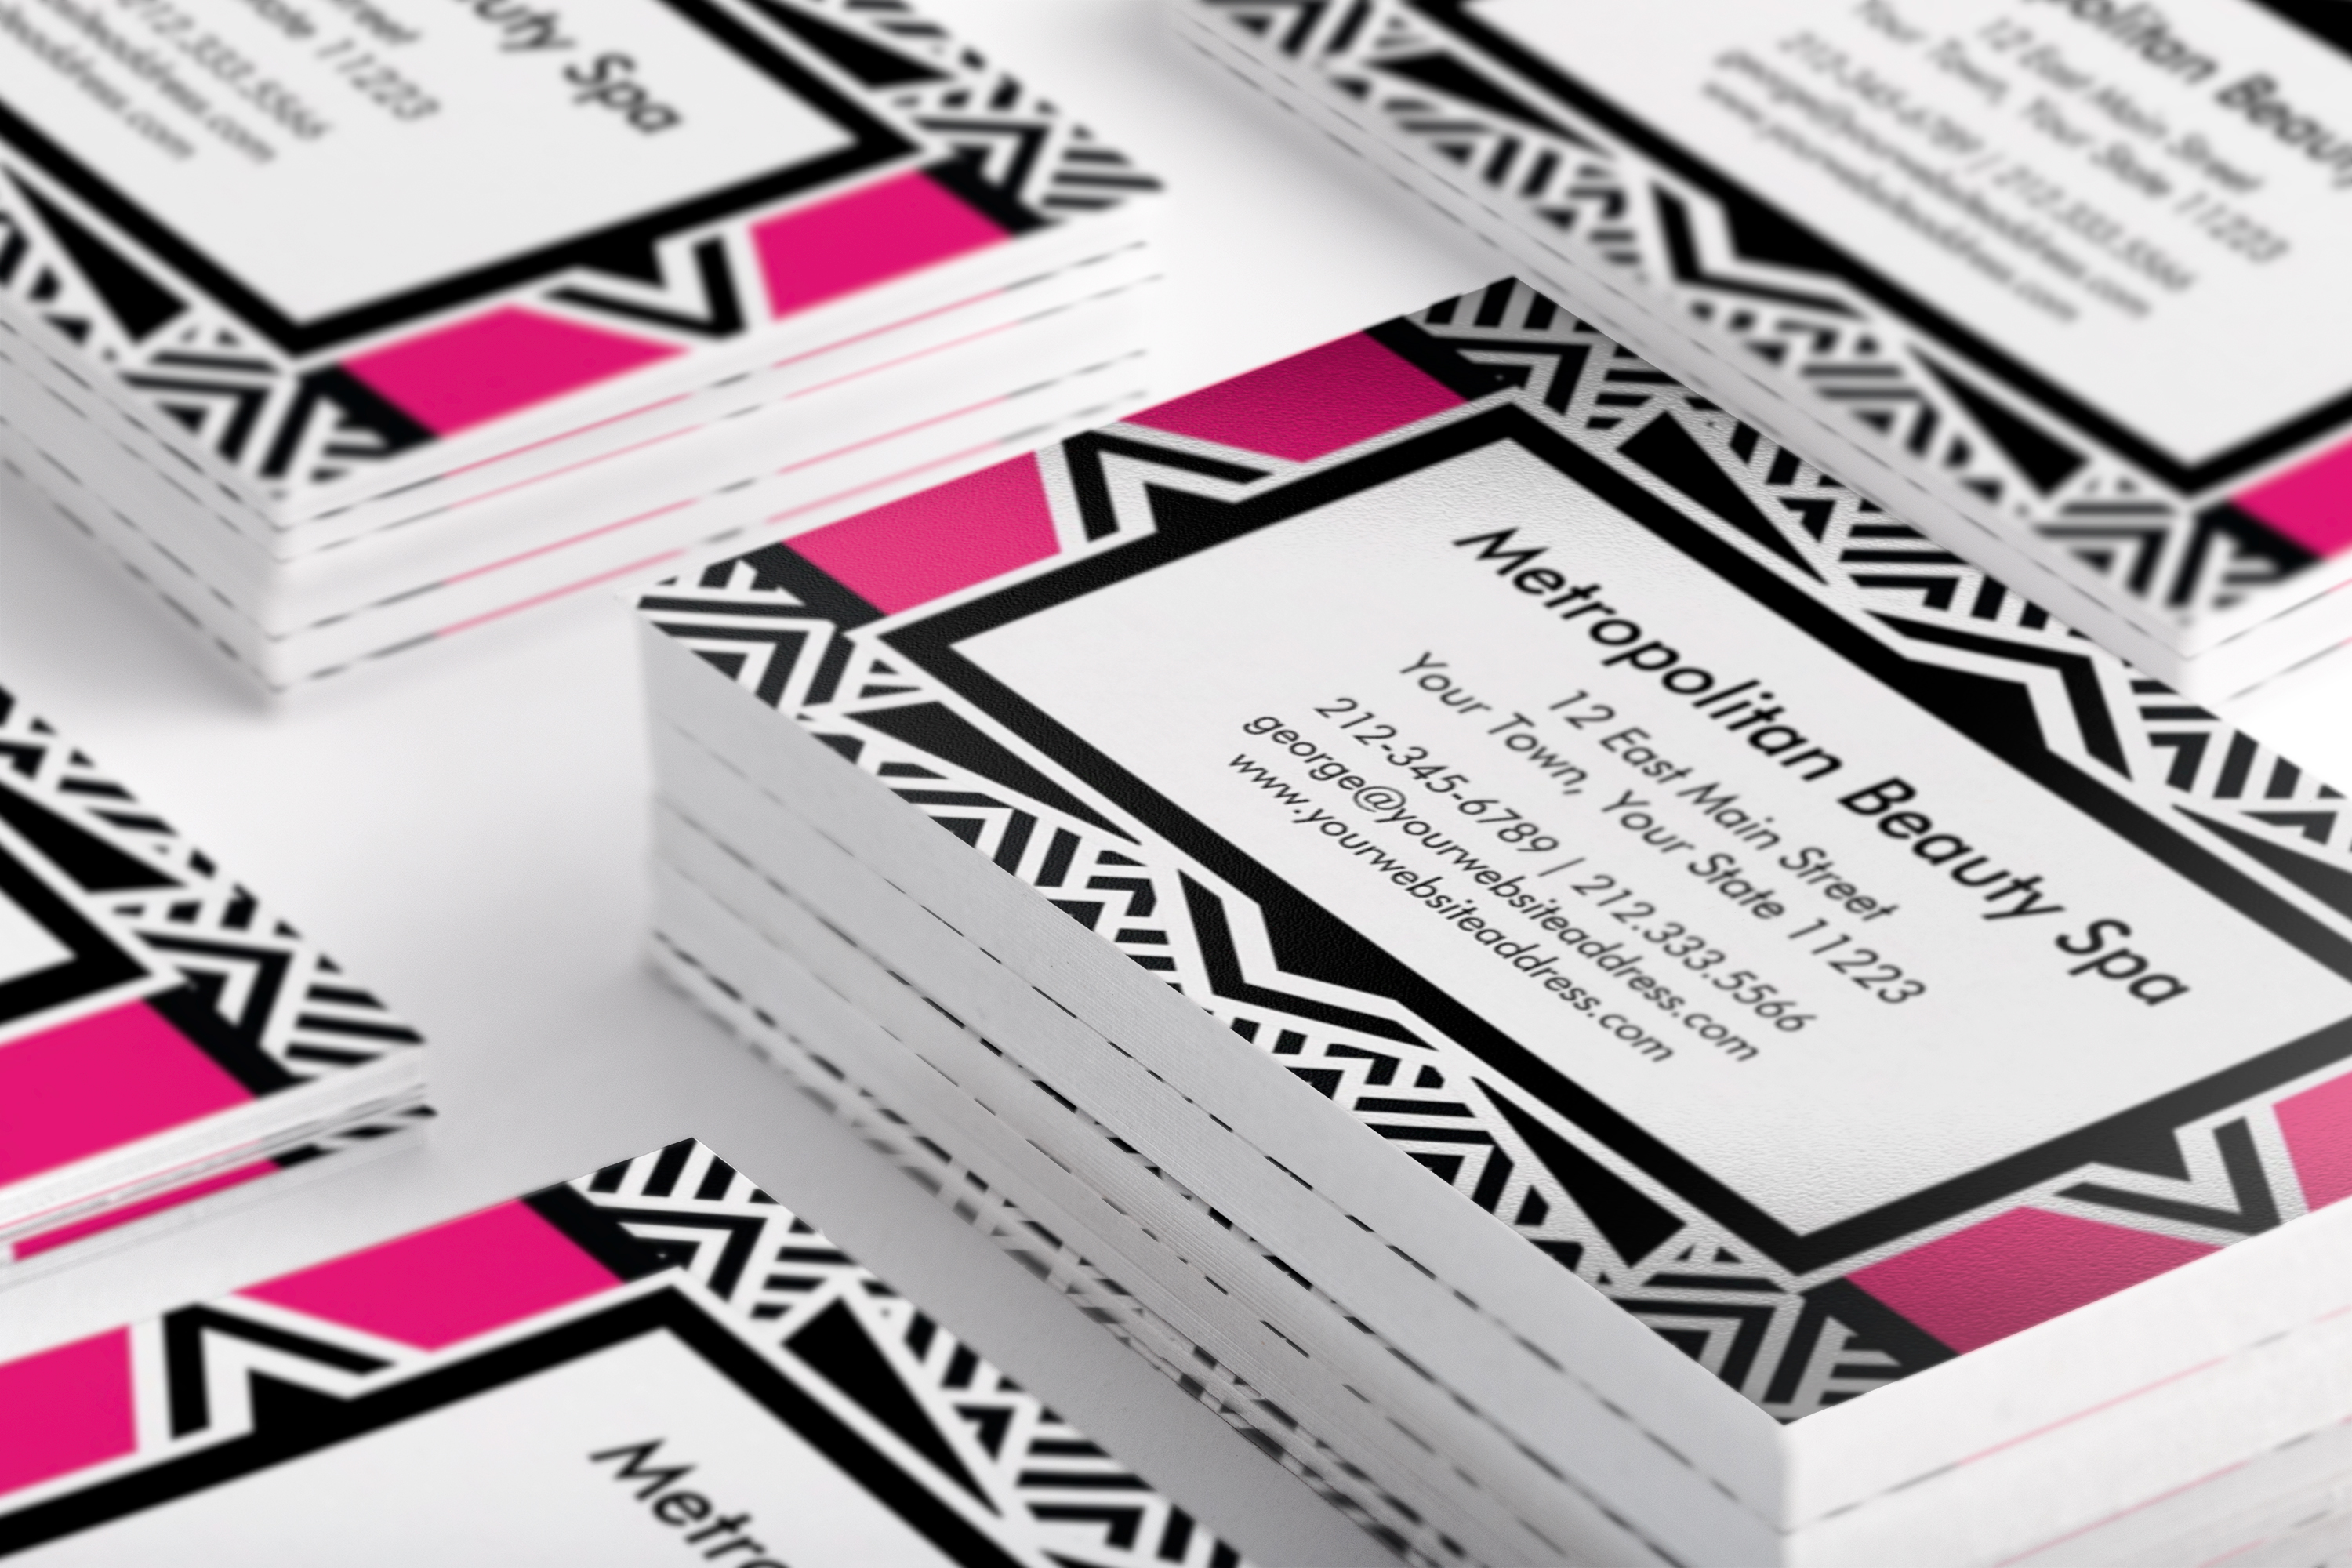 New age business cards image collections free business cards new age business cards choice image free business cards business card art deco design good resignation magicingreecefo Gallery